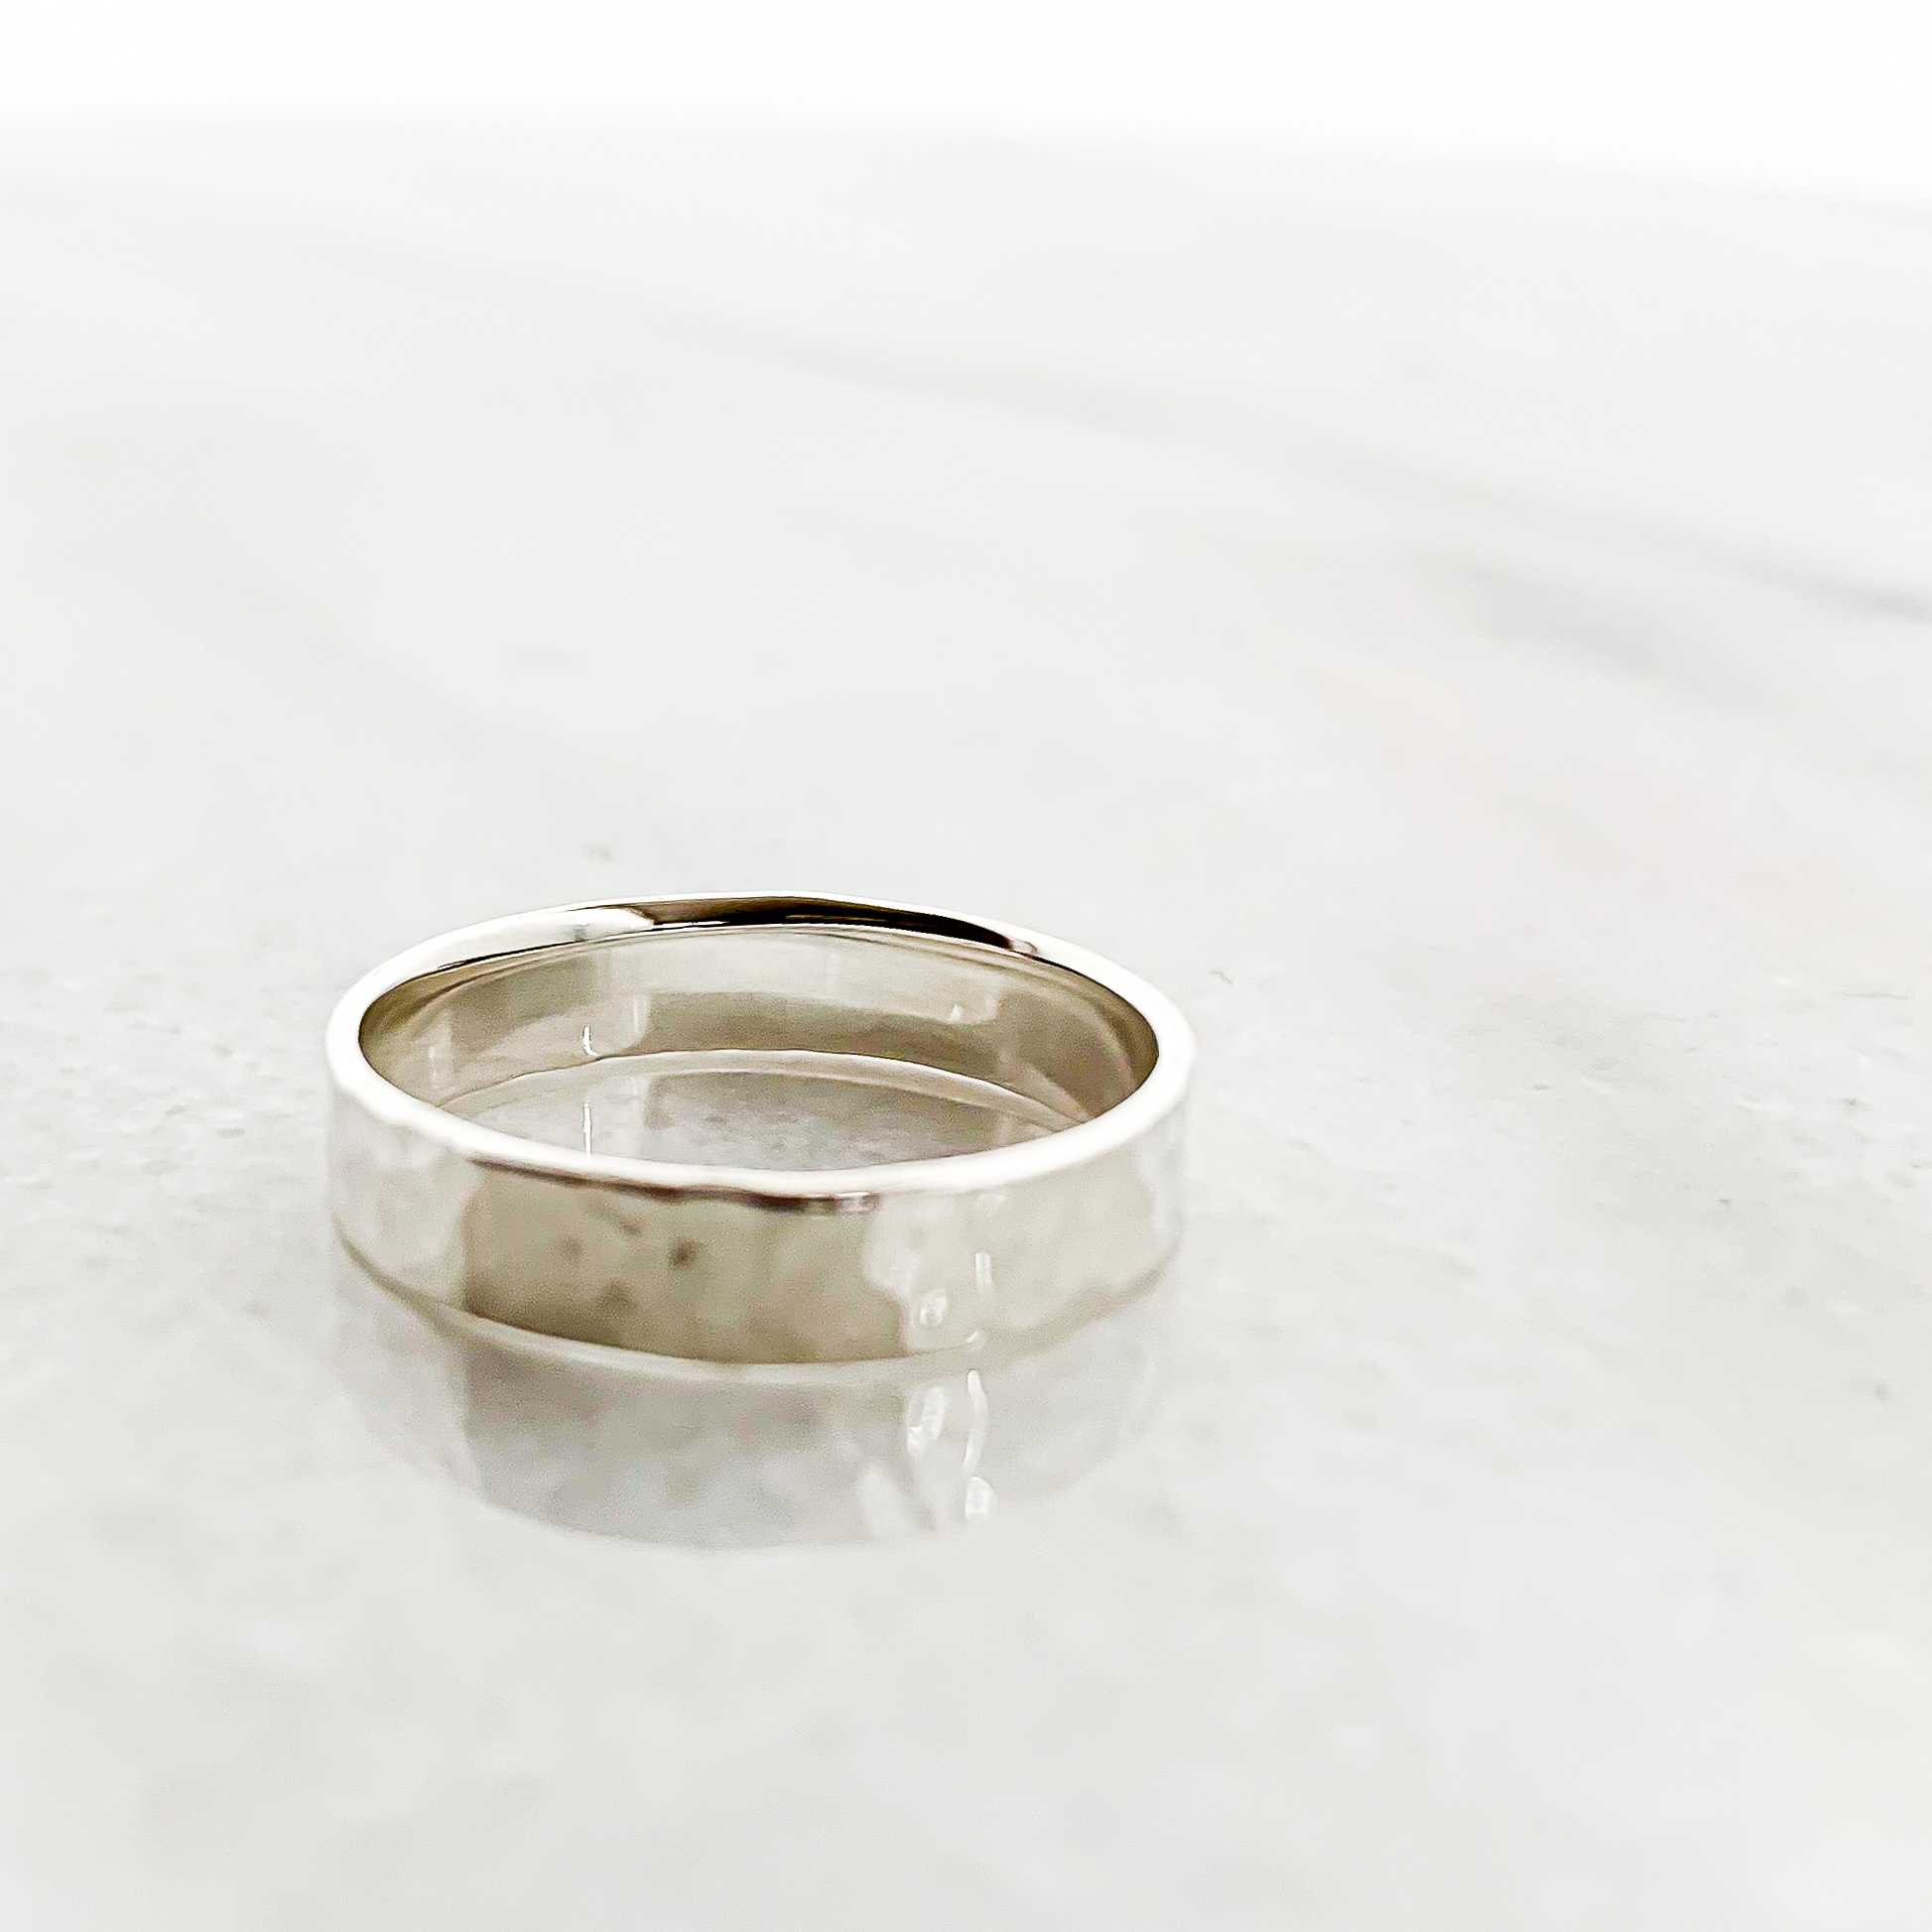 Silver925 Tsuchime wide ring